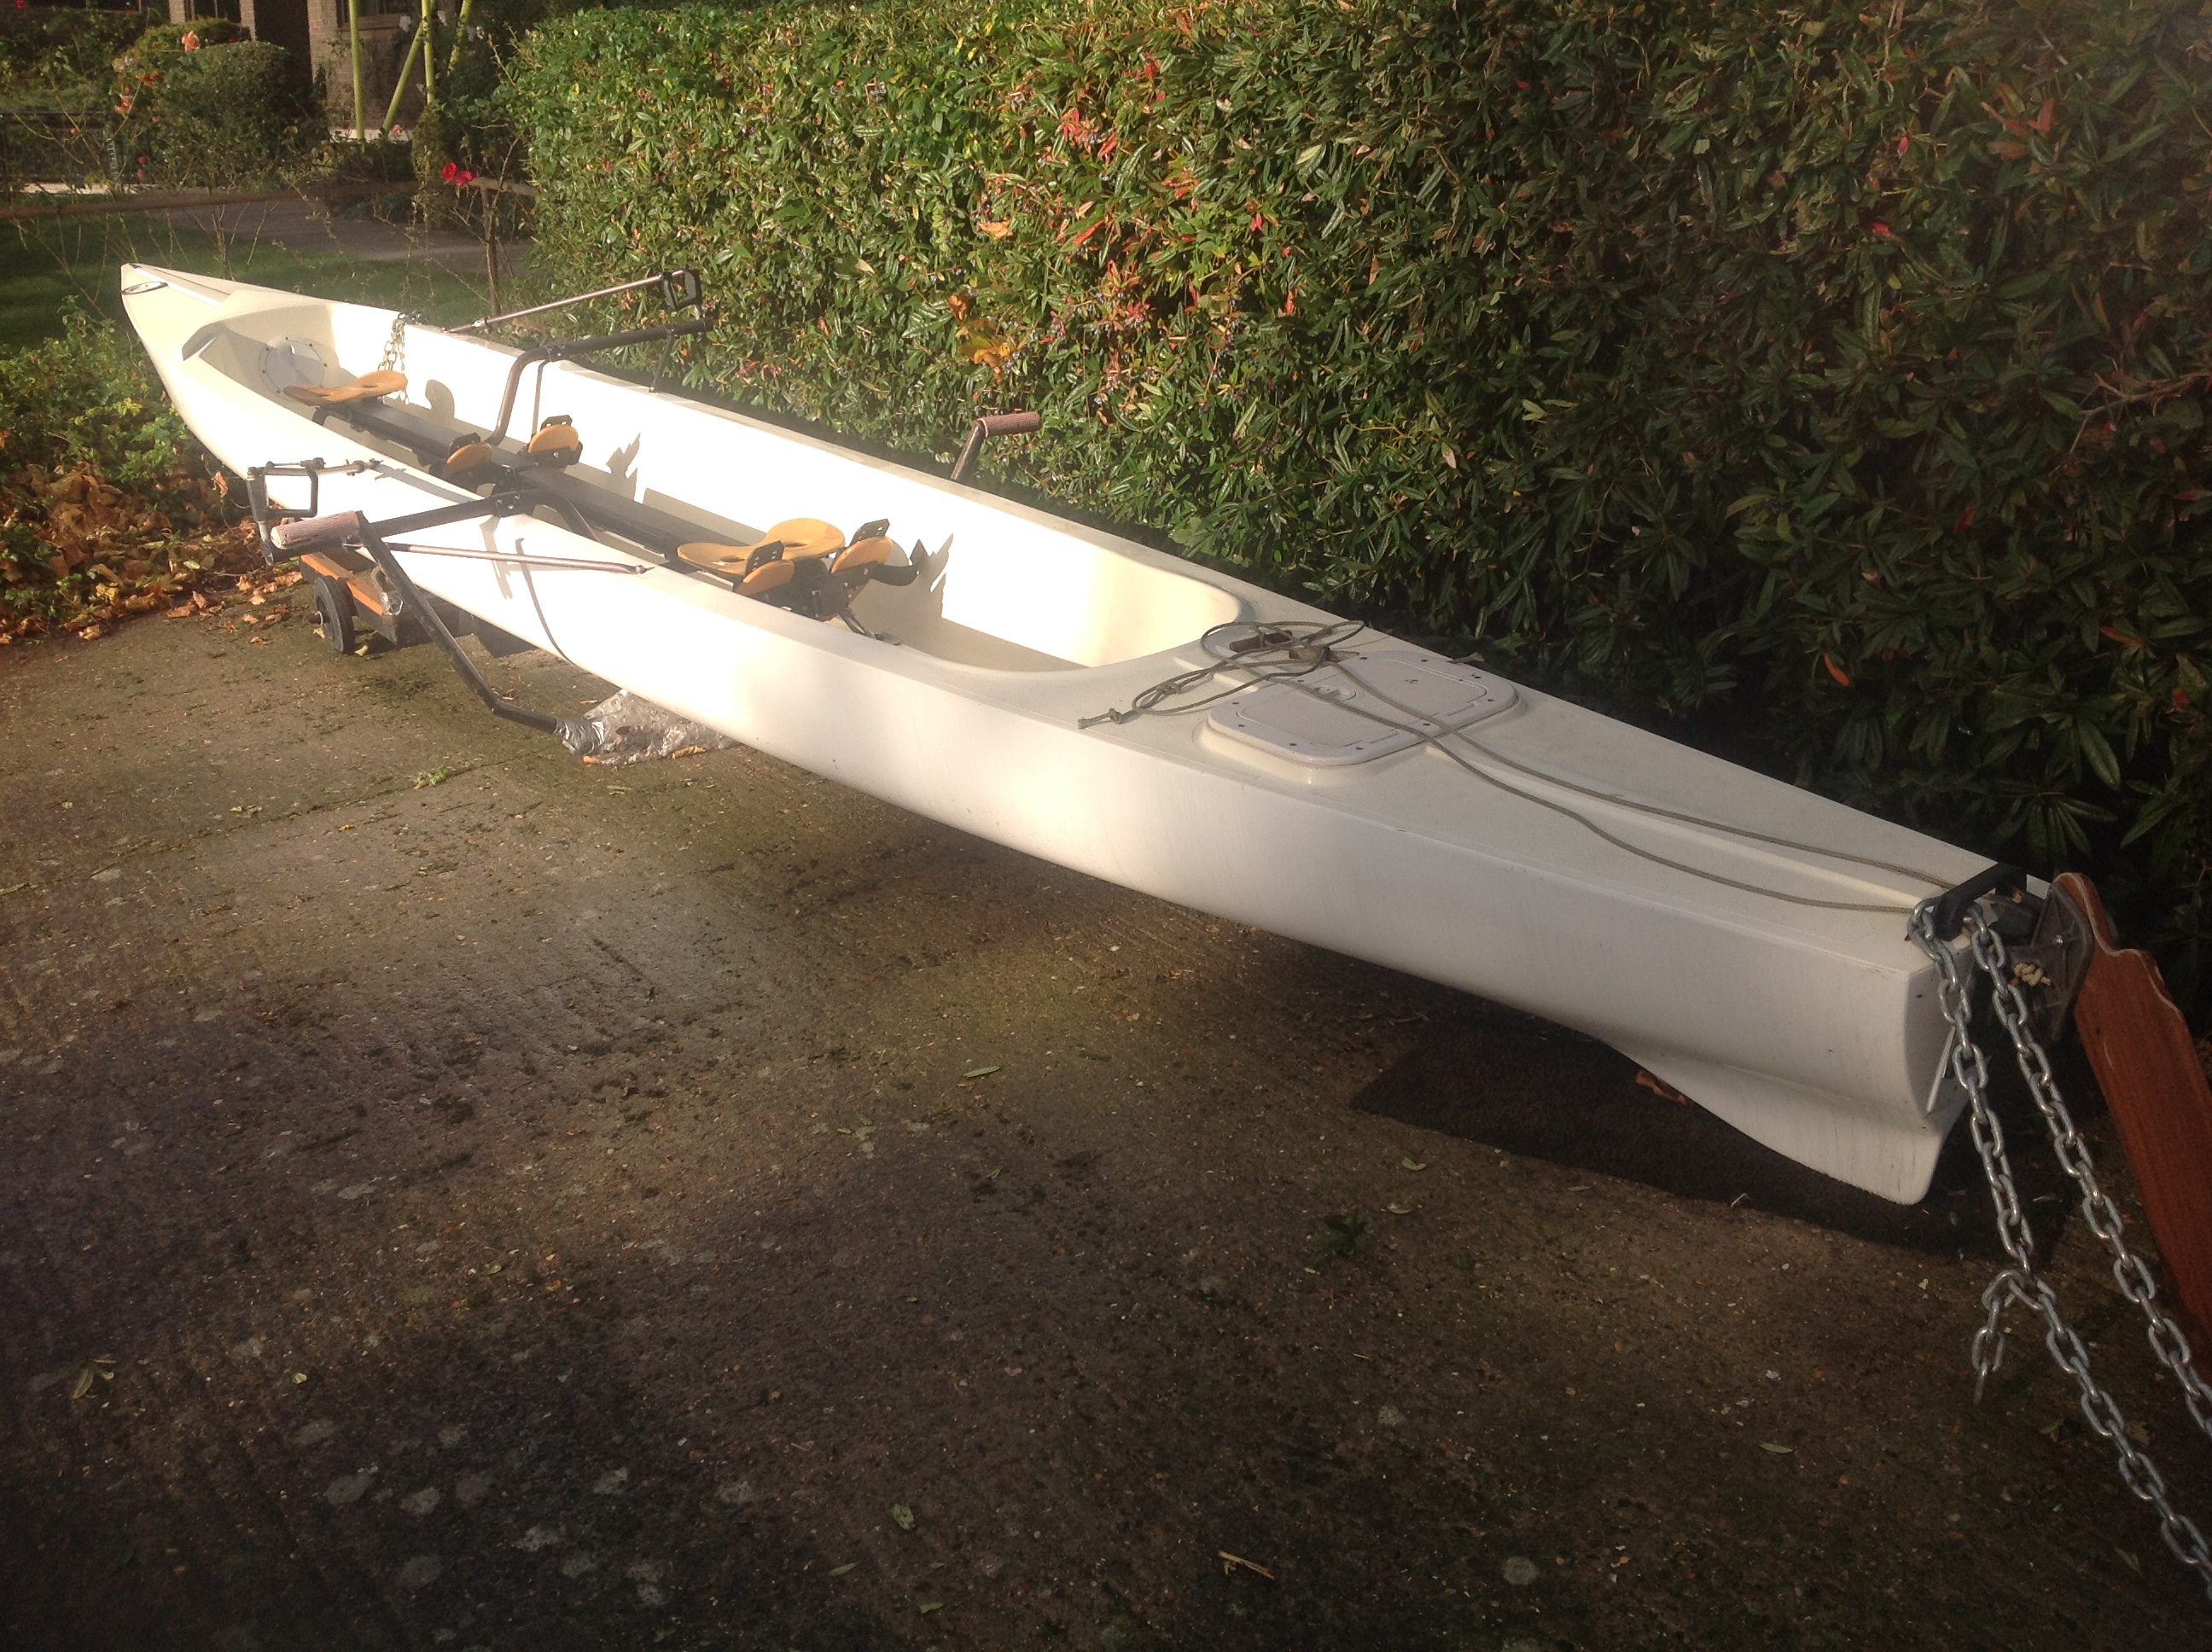 Tub coxed pair / double scull